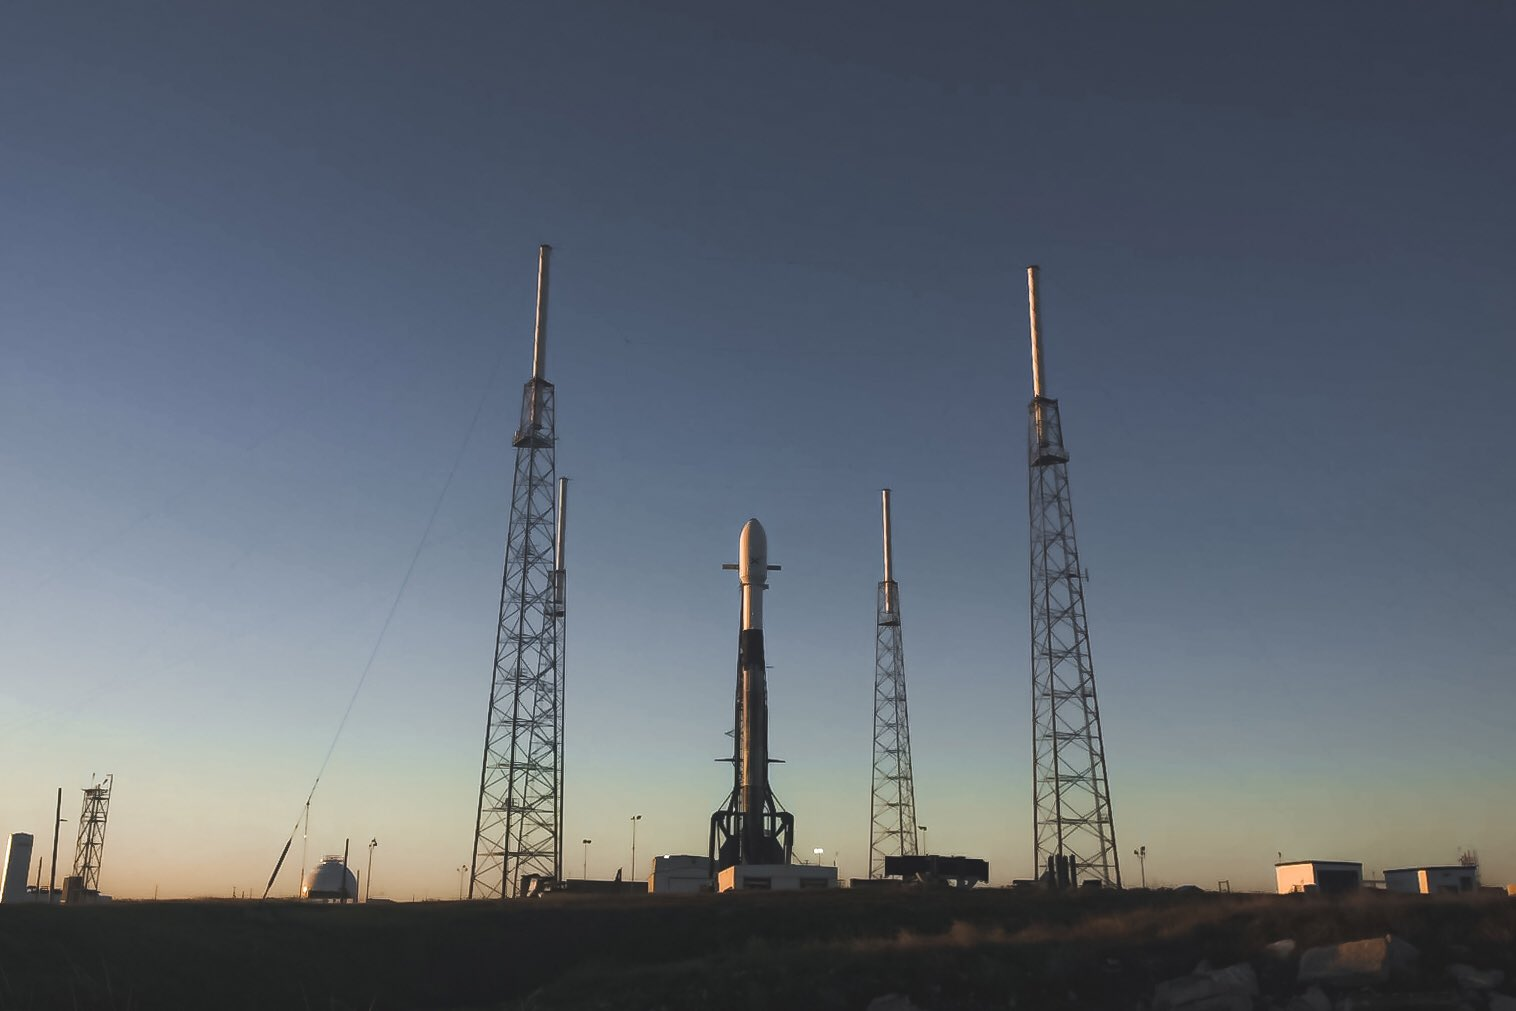 SpaceX will use a previously flown Falcon 9 rocket to deploy more Starlink satellites tonight. Watch it live!